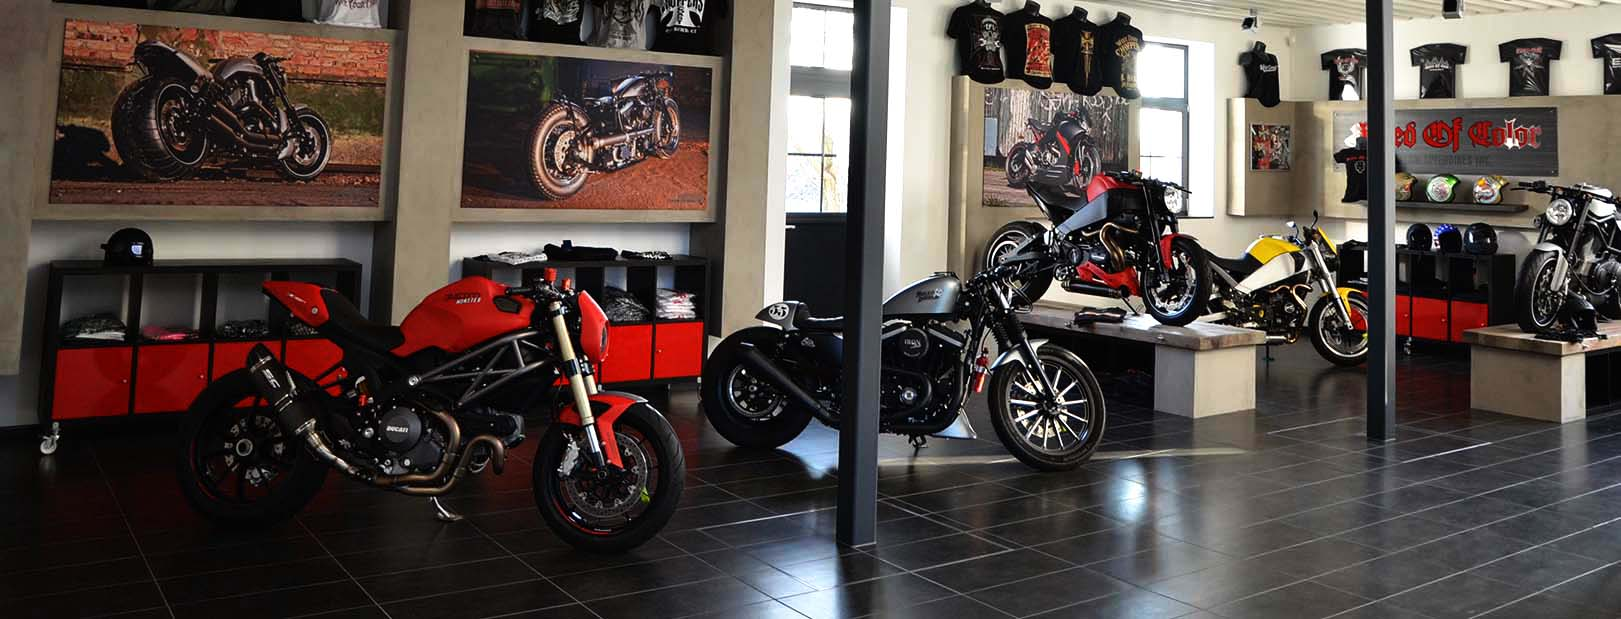 soc-bike-showroom